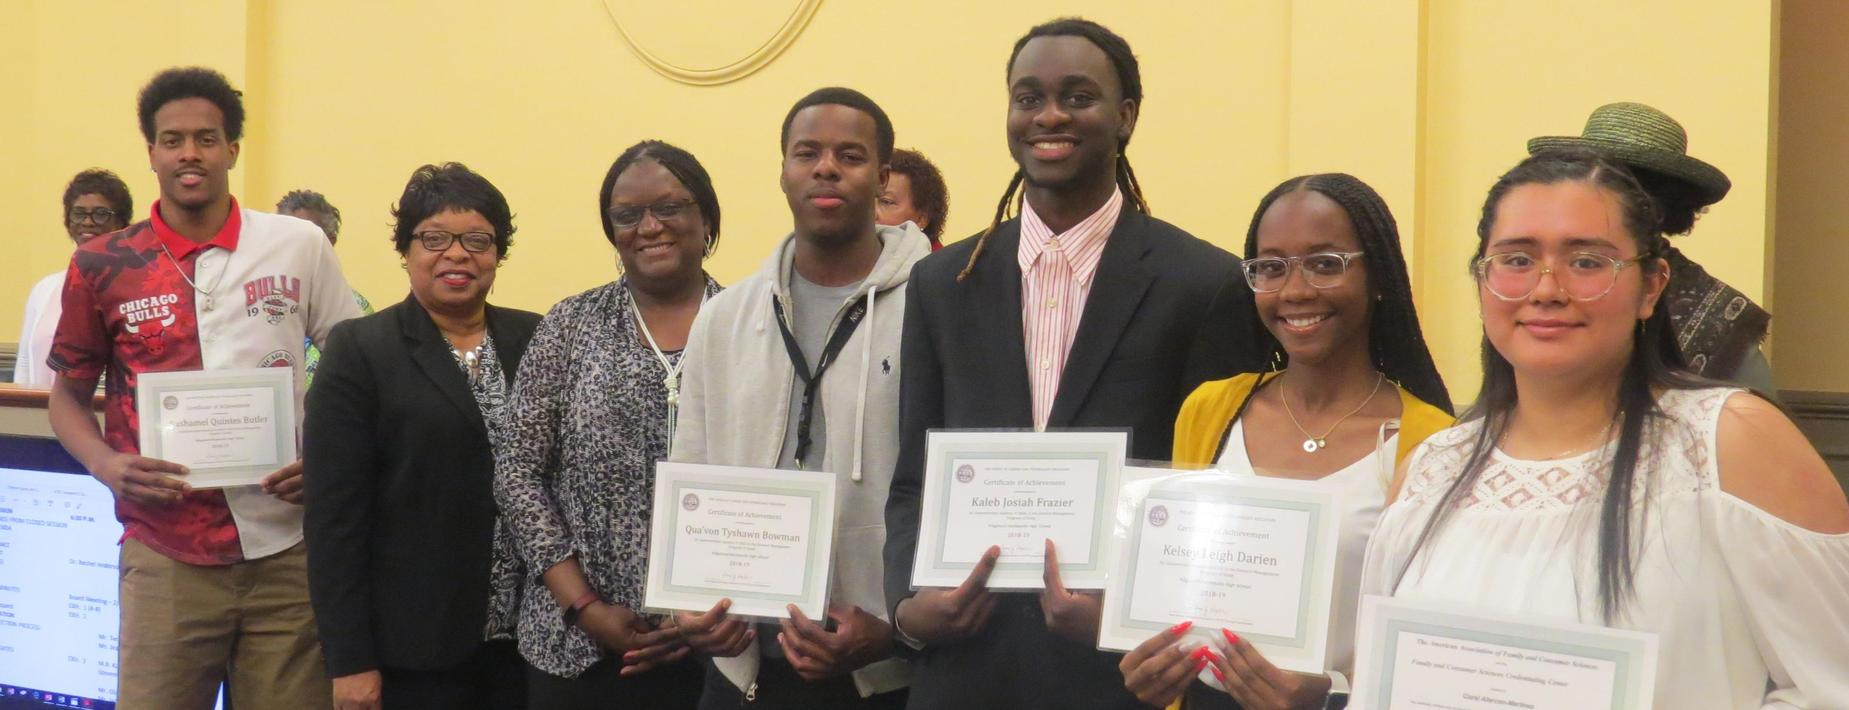 CATE Business and Family and Consumer Science Completers recognized at board meeting